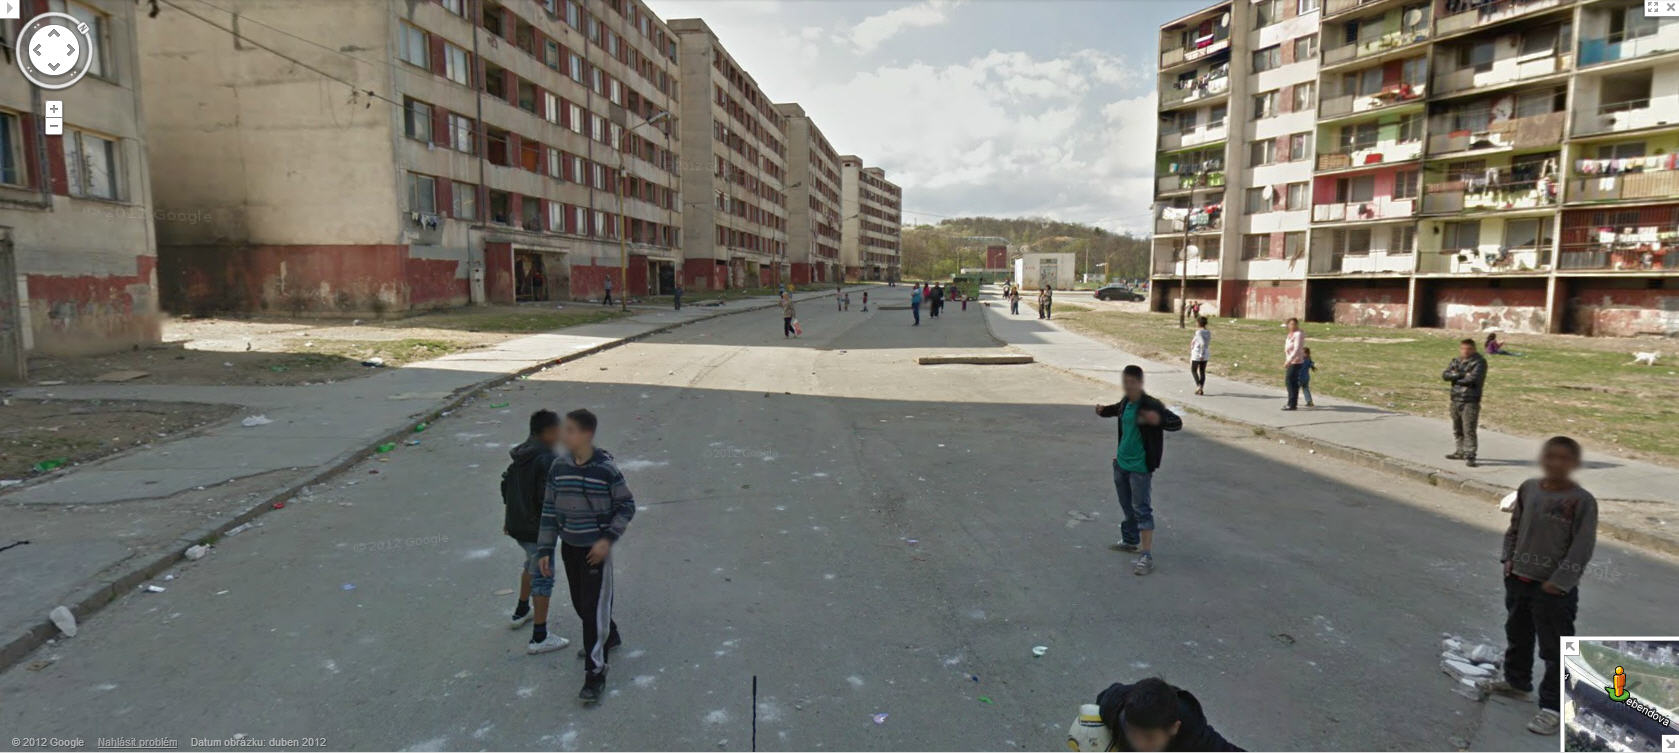 google-street-view-slovakia-is-now-live-good-or-bad